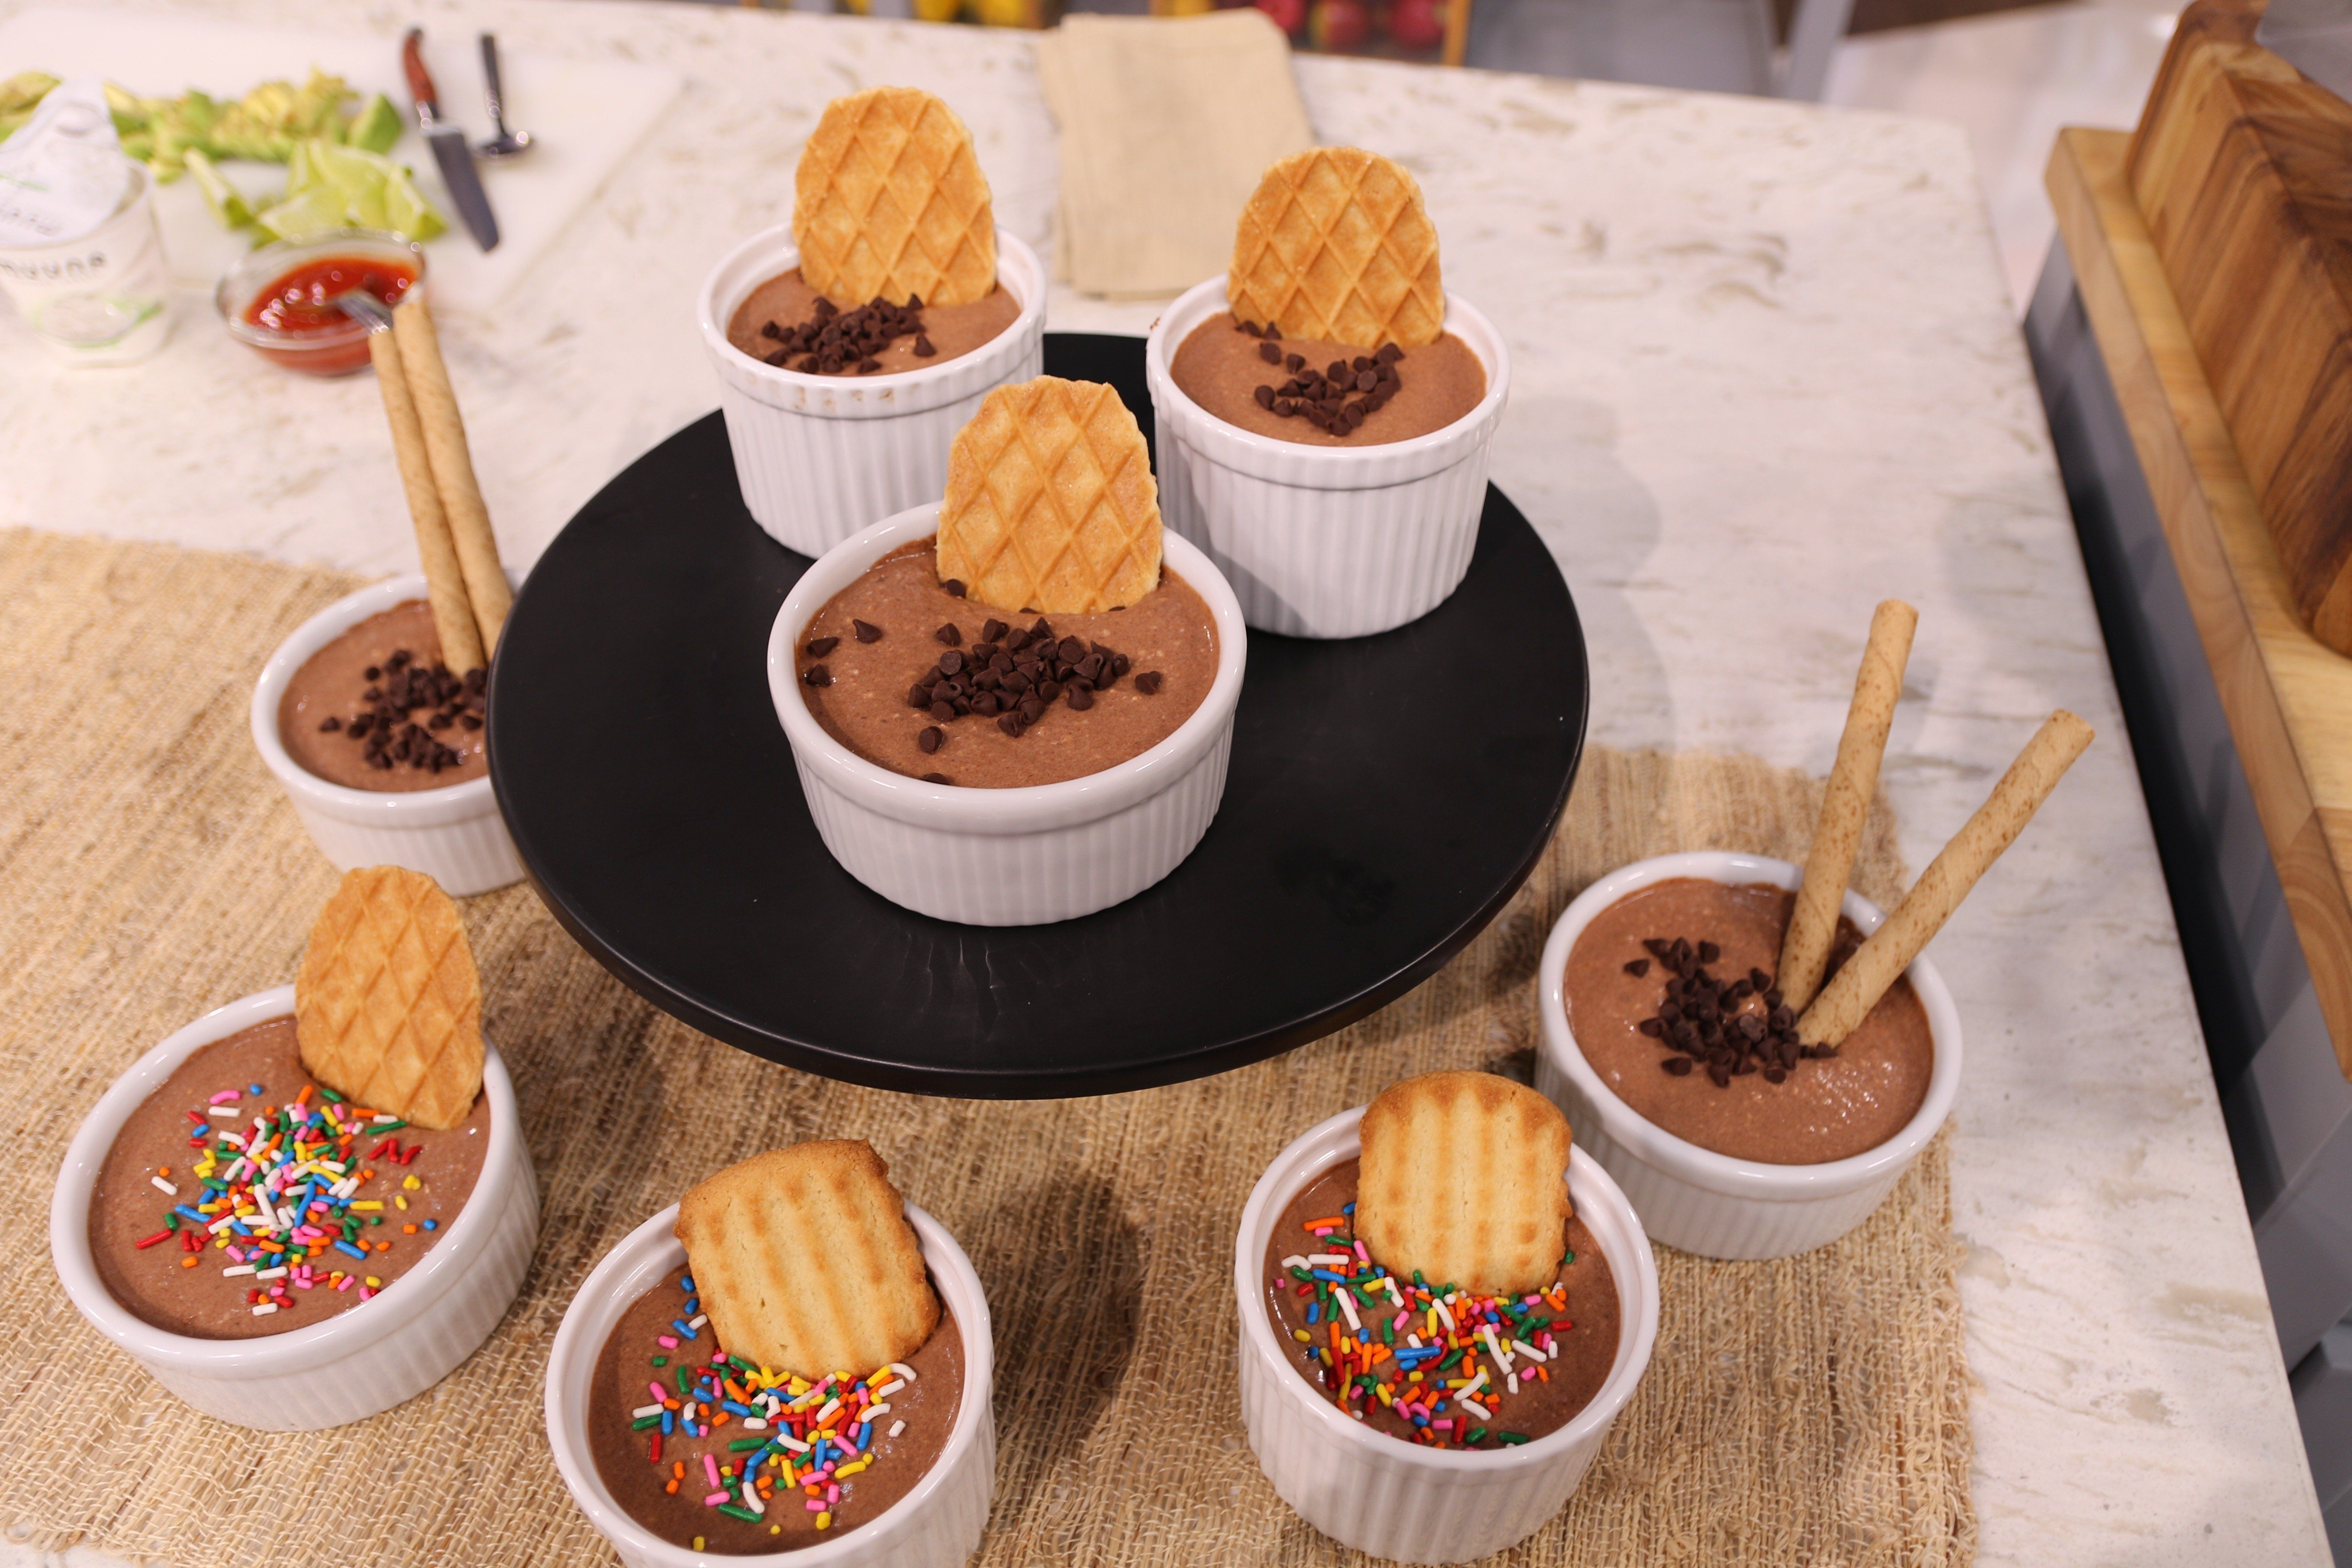 Watch lifestyle expert @alisondeyette  make three tasty recipes using Muuna cottage cheese on @accesshollywood   LIVE: Apple & Cottage Breakfast Parfait, Mexican Style Tortilla with Muuna, and Chocolate Cheesecake Dip from @whattheforkblog.